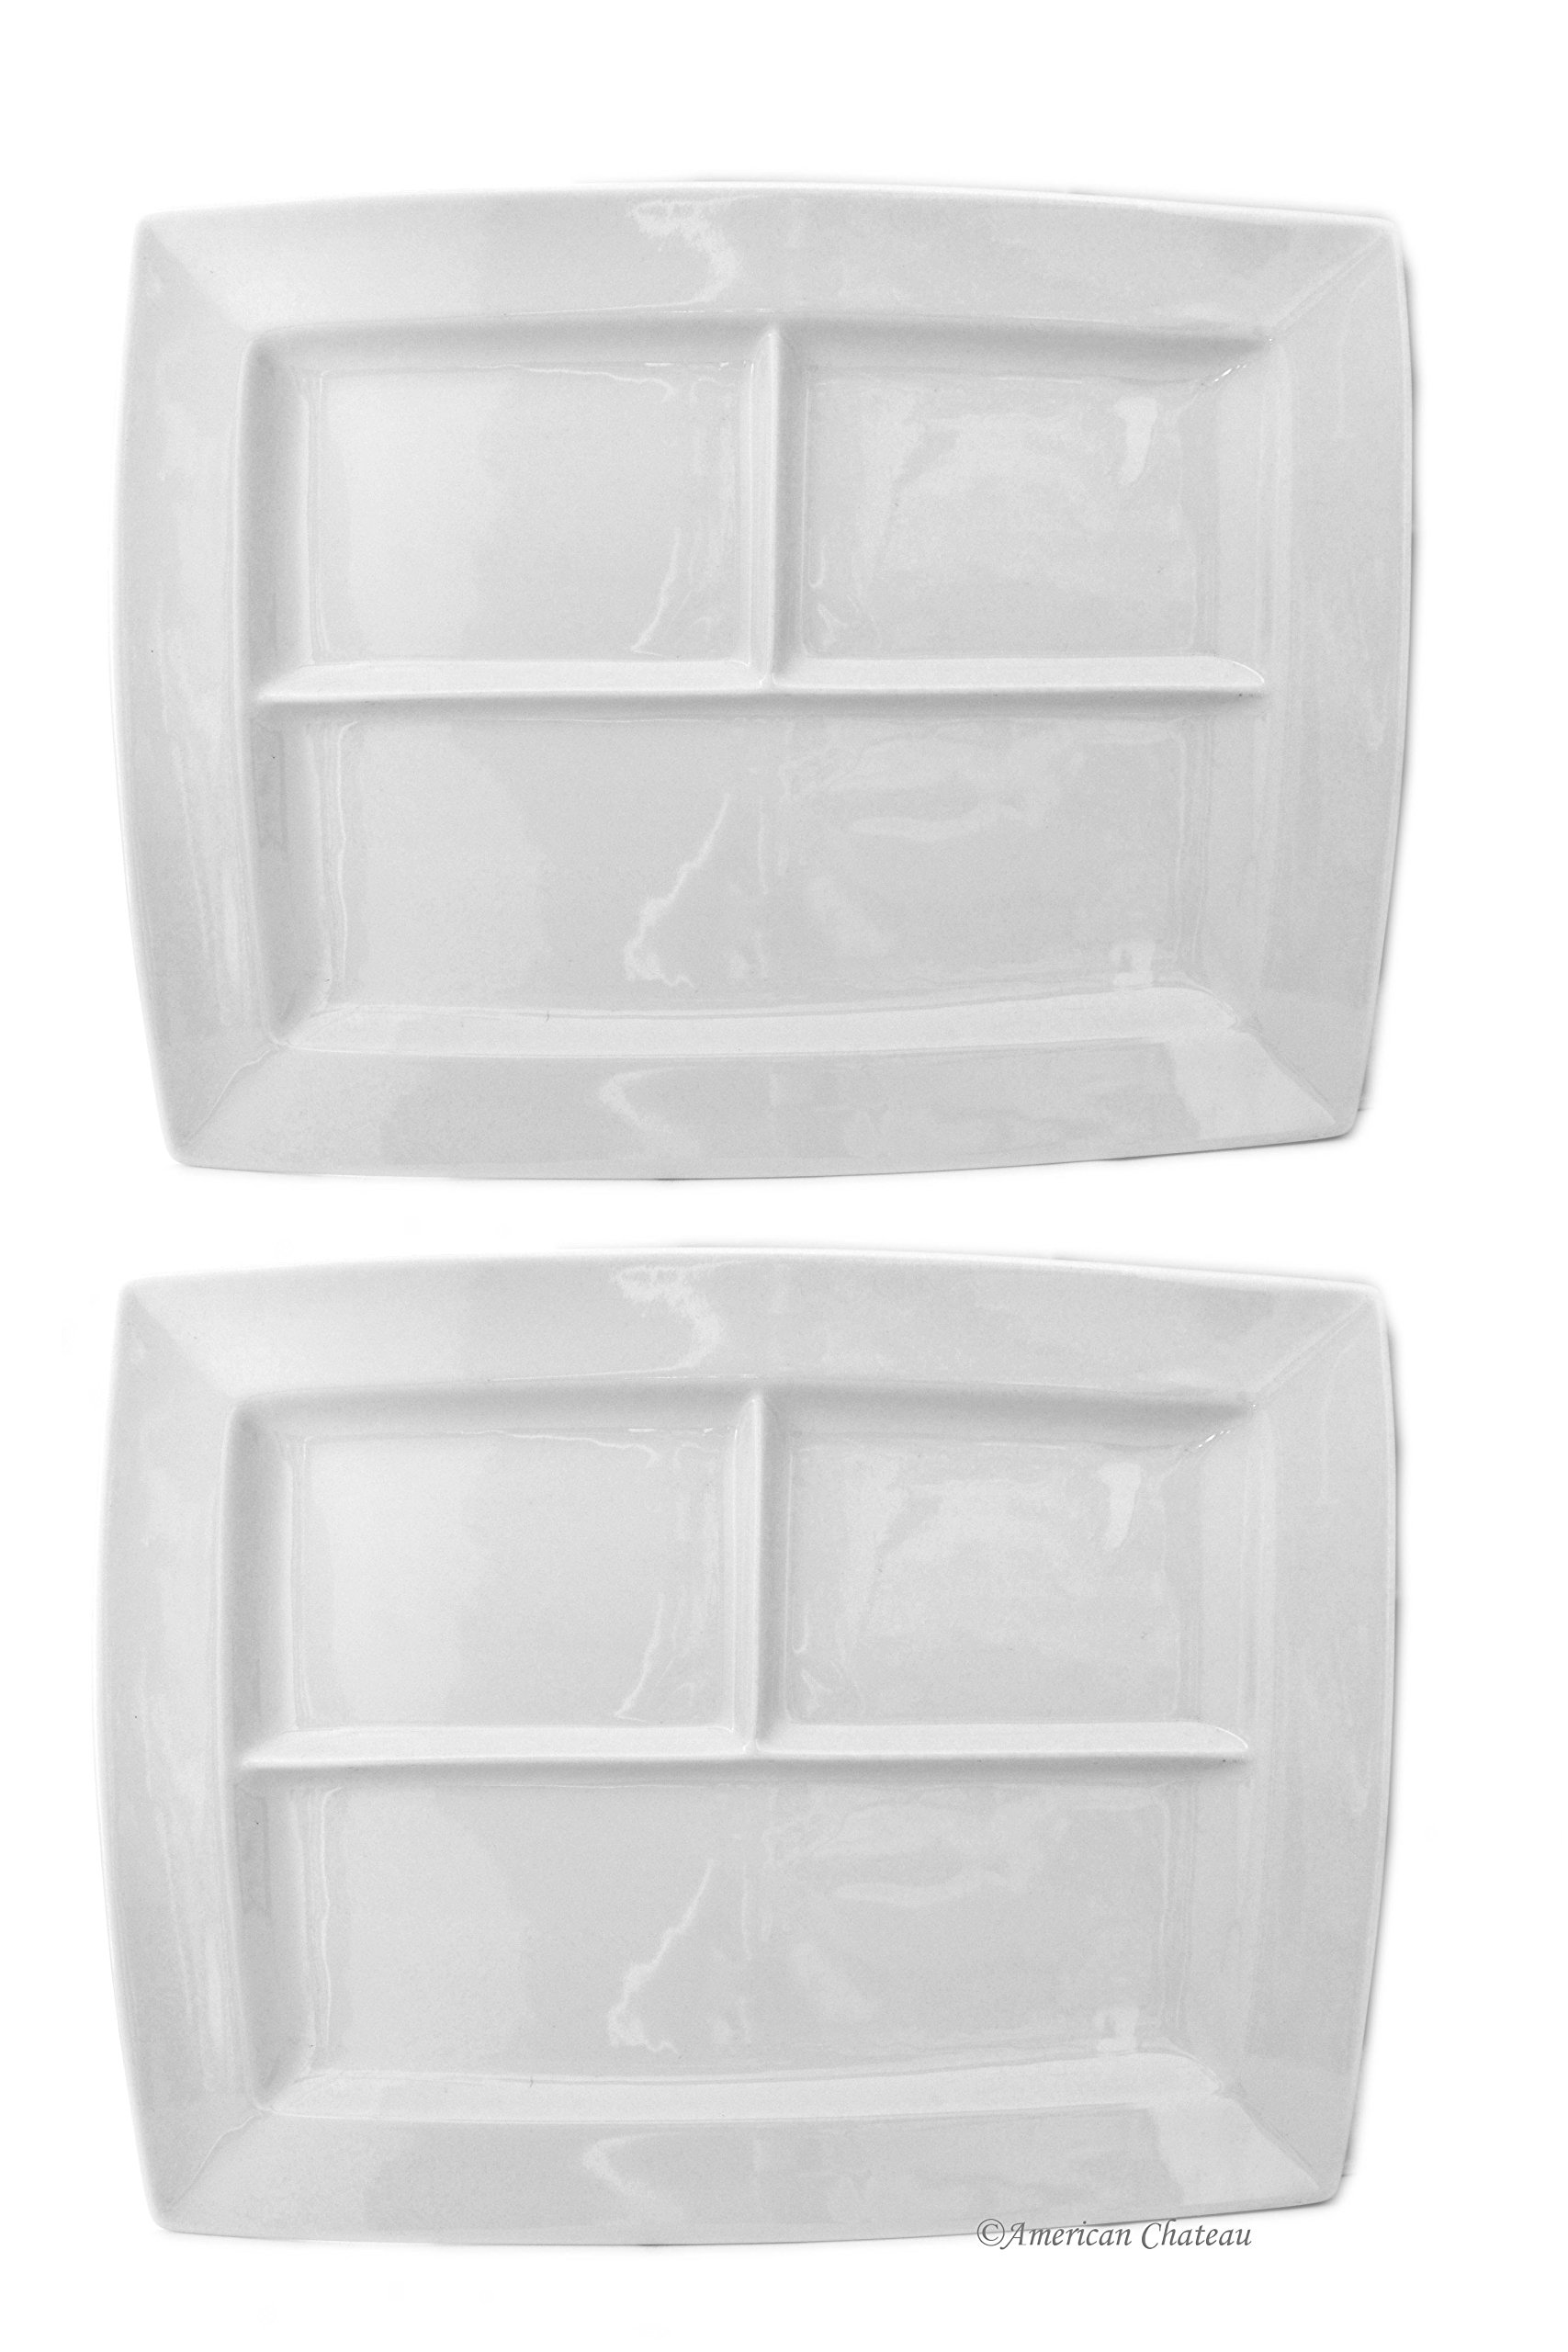 Set of 2 Large White Porcelain Divided 14'' x 11'' Fondue Plates Platters Trays by American Chateau